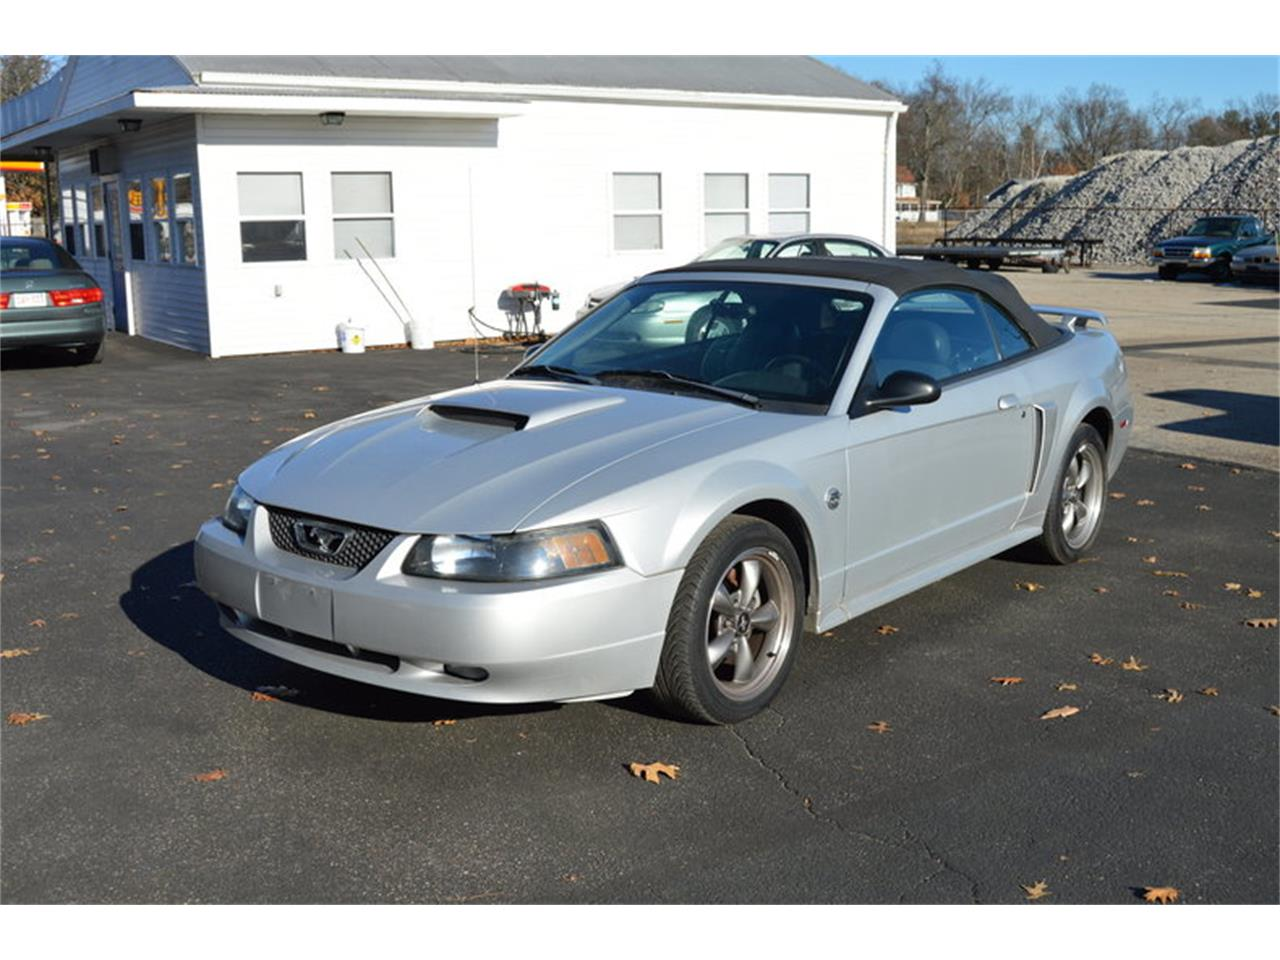 Large picture of 04 mustang gt mll3